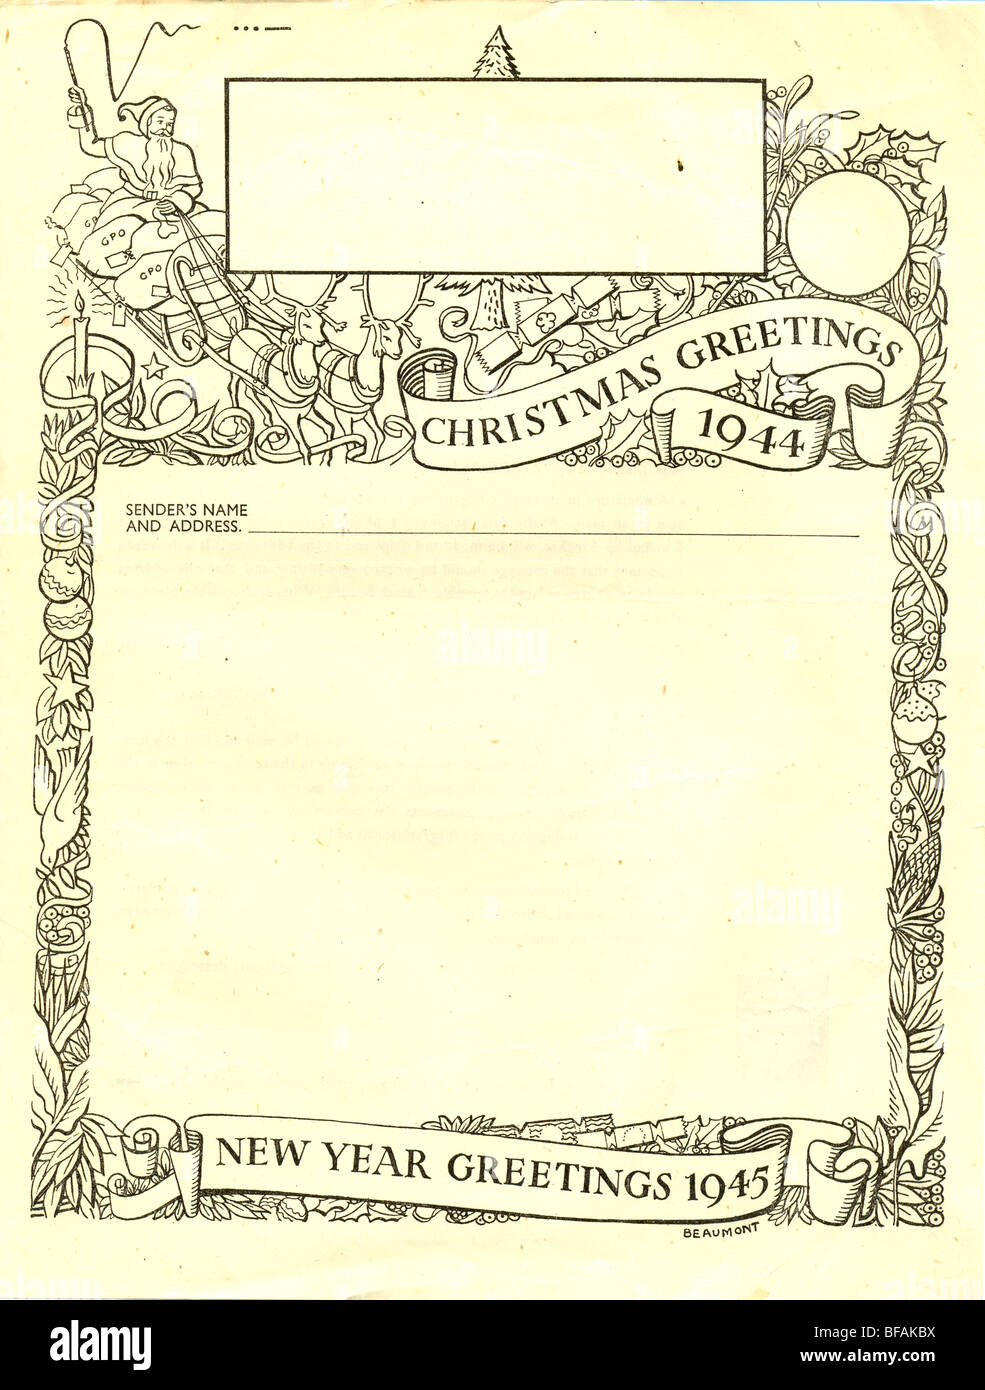 Post Office Christmas Greetings Airgraph form 1944 - Stock Image